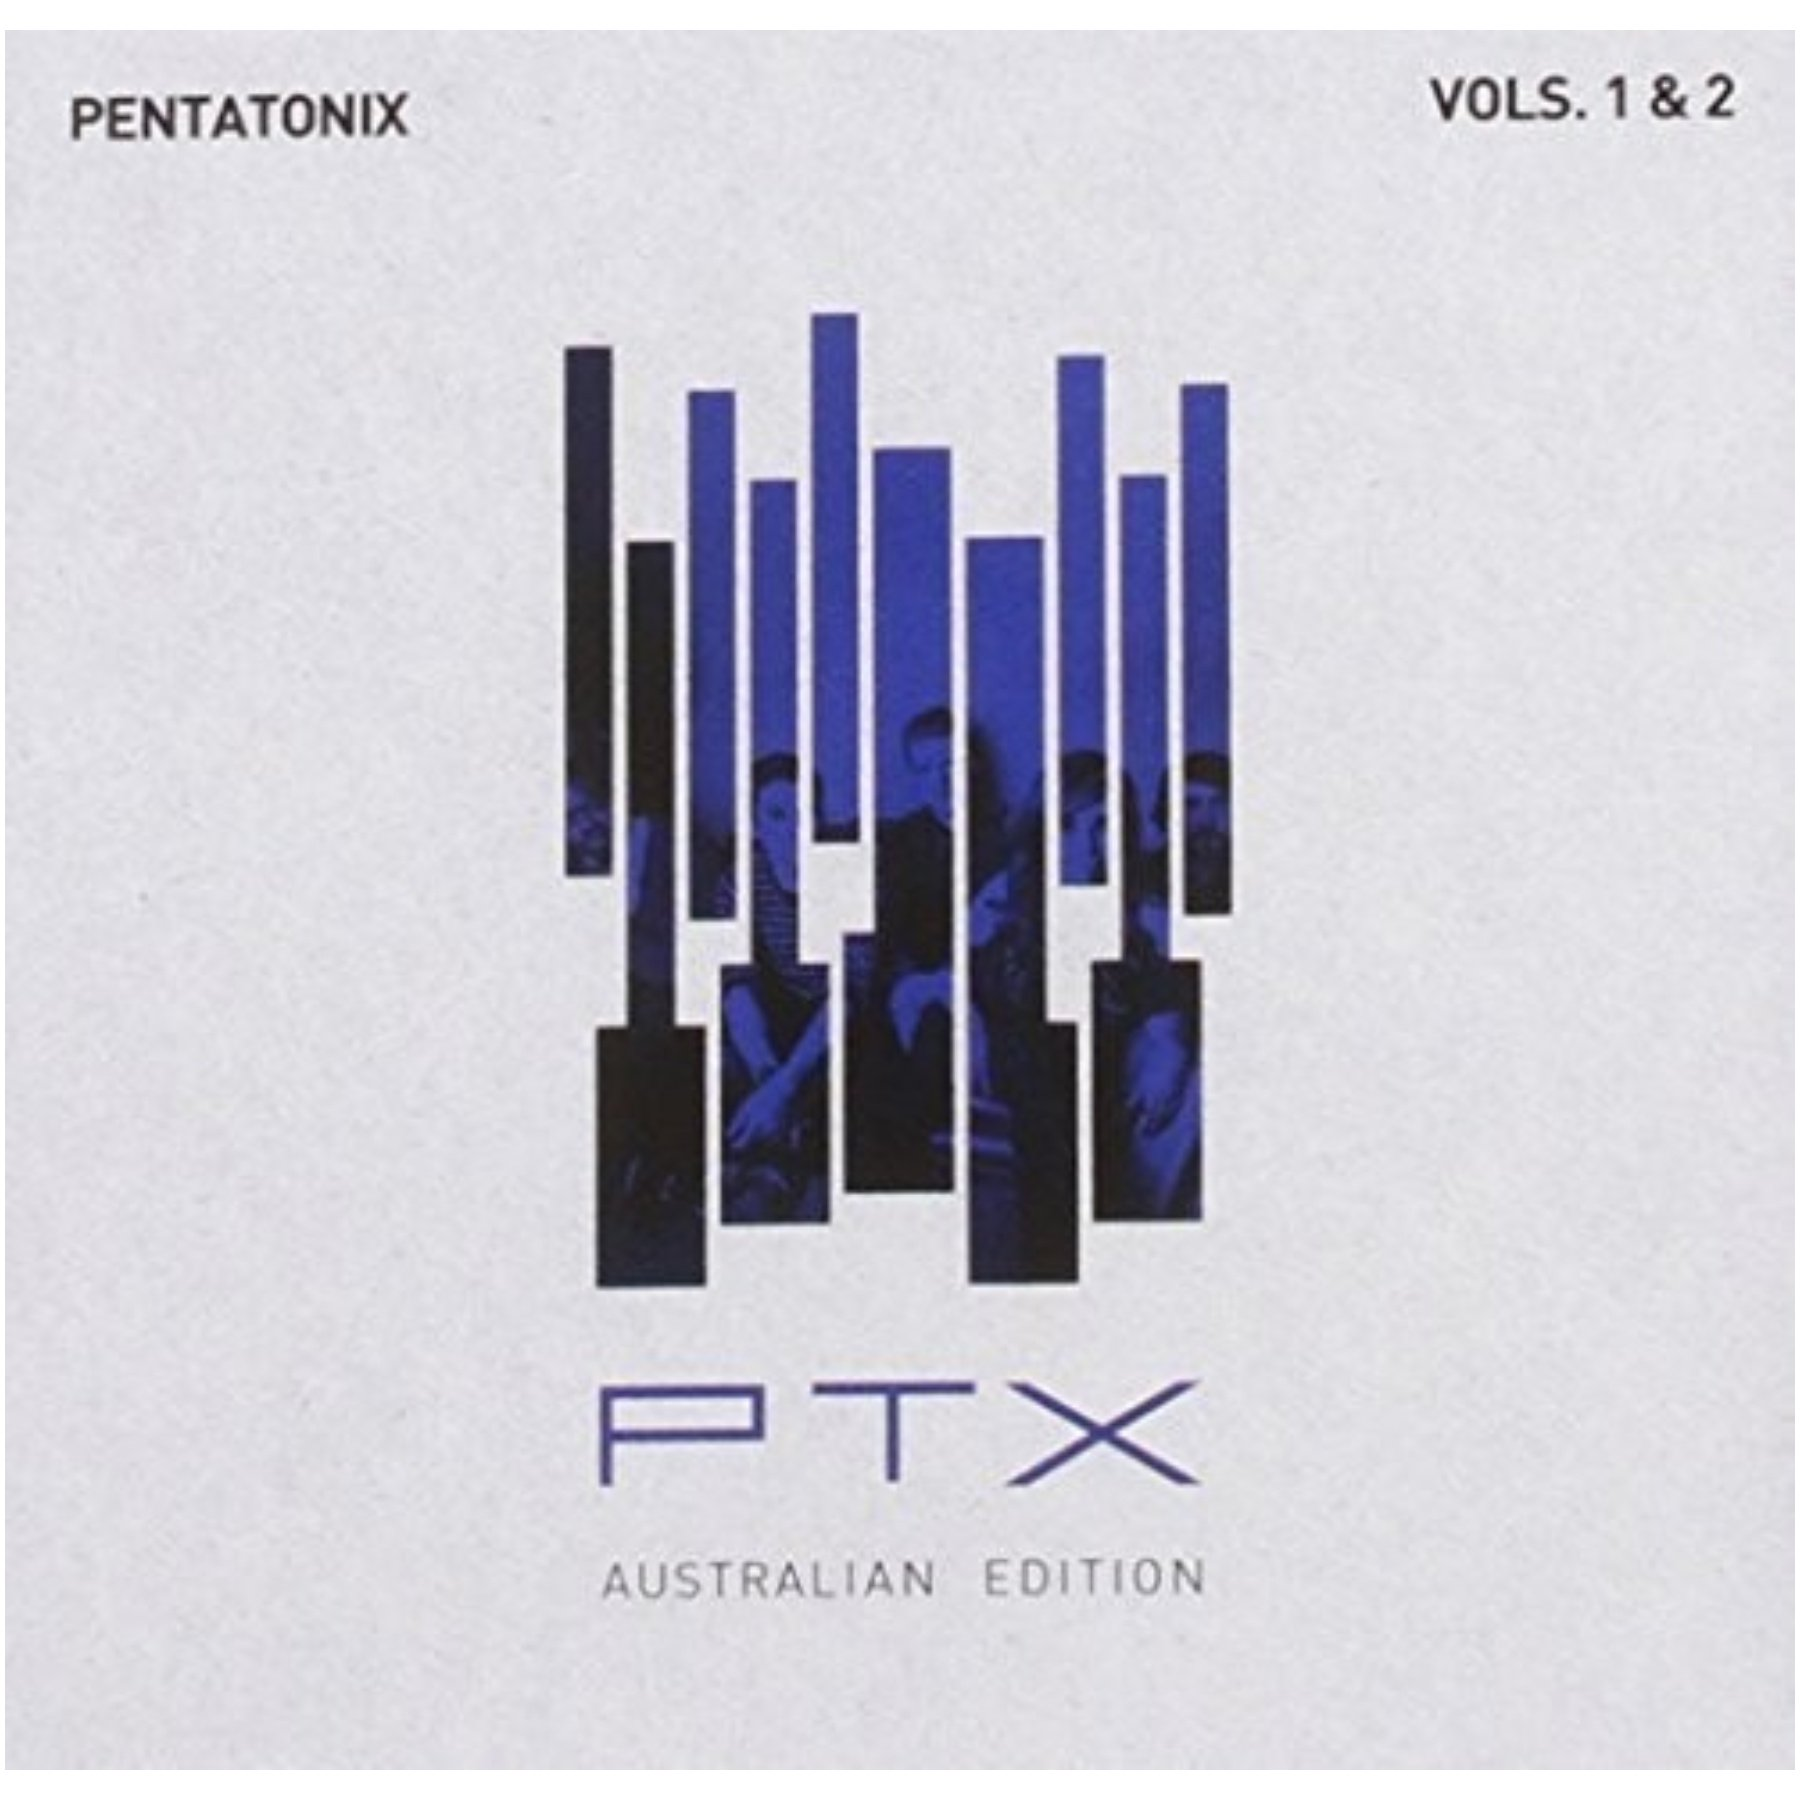 TÉLÉCHARGER PENTATONIX WE ARE YOUNG